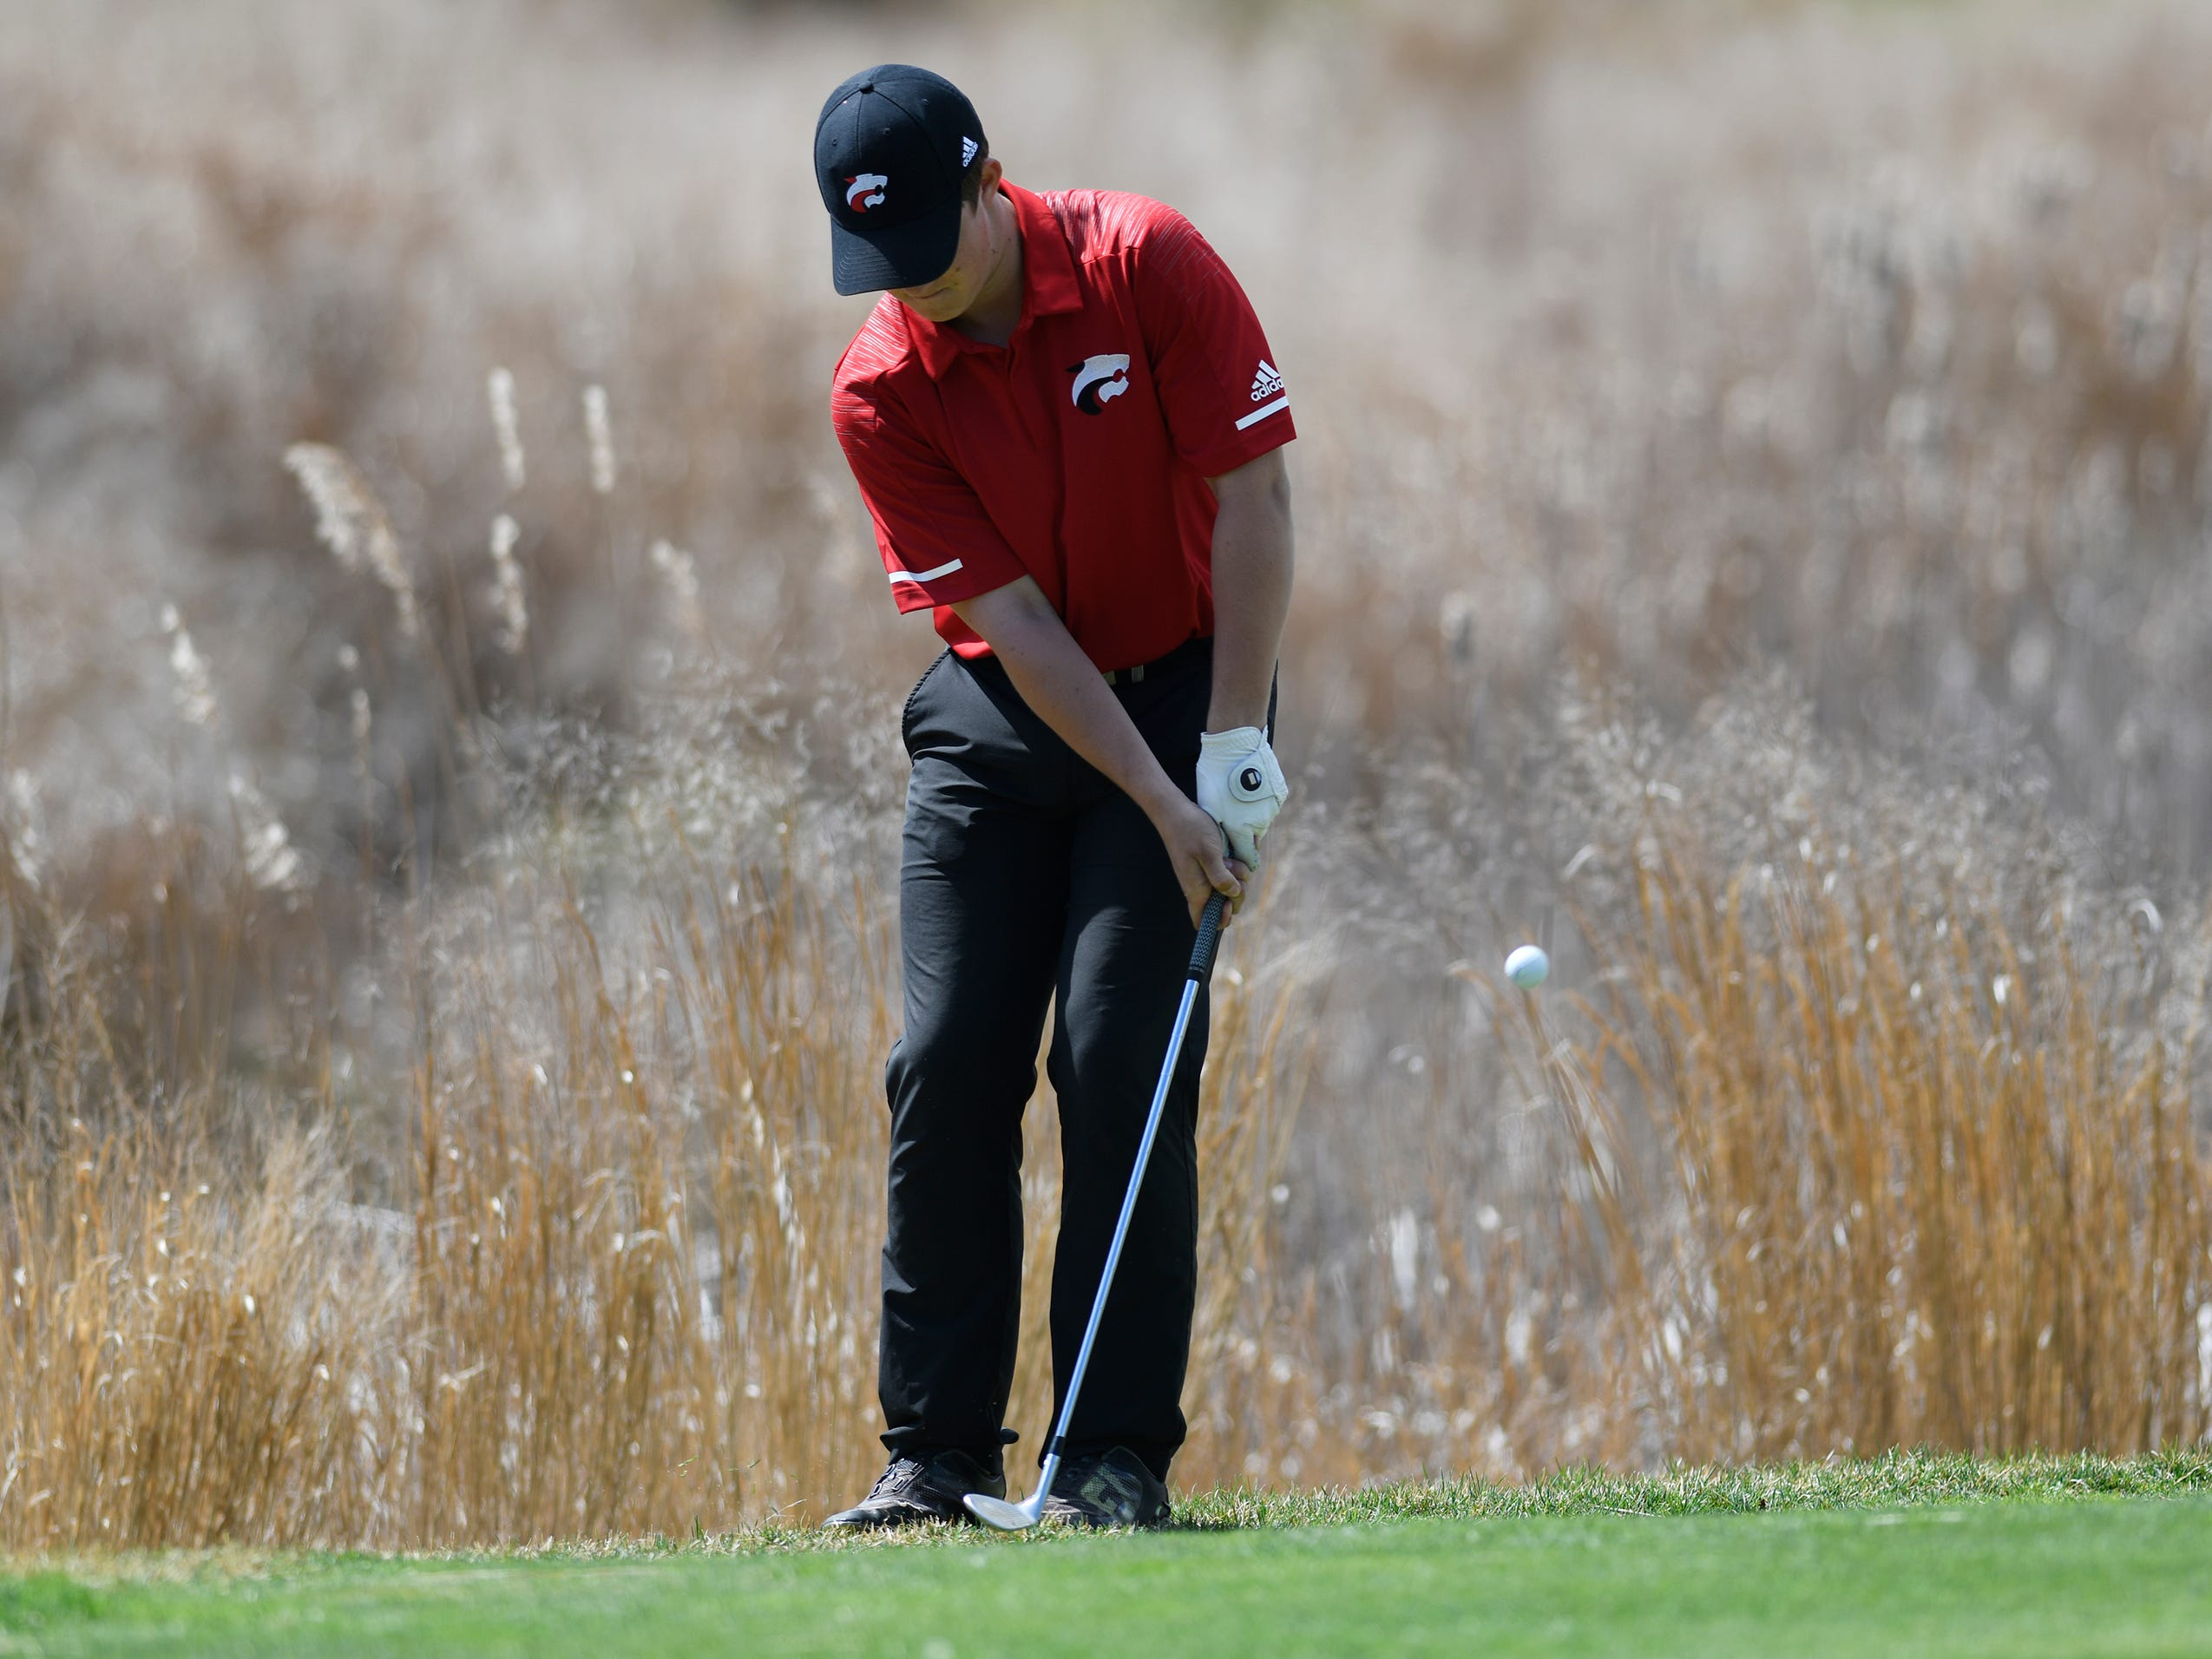 Kyle Rogers of Jackson Memorial competes at the Ocean County Tournament on April 15, 2019,  at Sea Oaks in Little Egg Harbor. Toms River North's Connor Bekefi emerged as the individual champion with a 3-over-par 75, four shots better than teammate Leo Kane. Toms River North successfully defended its team title, posting a total of 336, which was 18 shots better than Southern. Brick Memorial finished third.